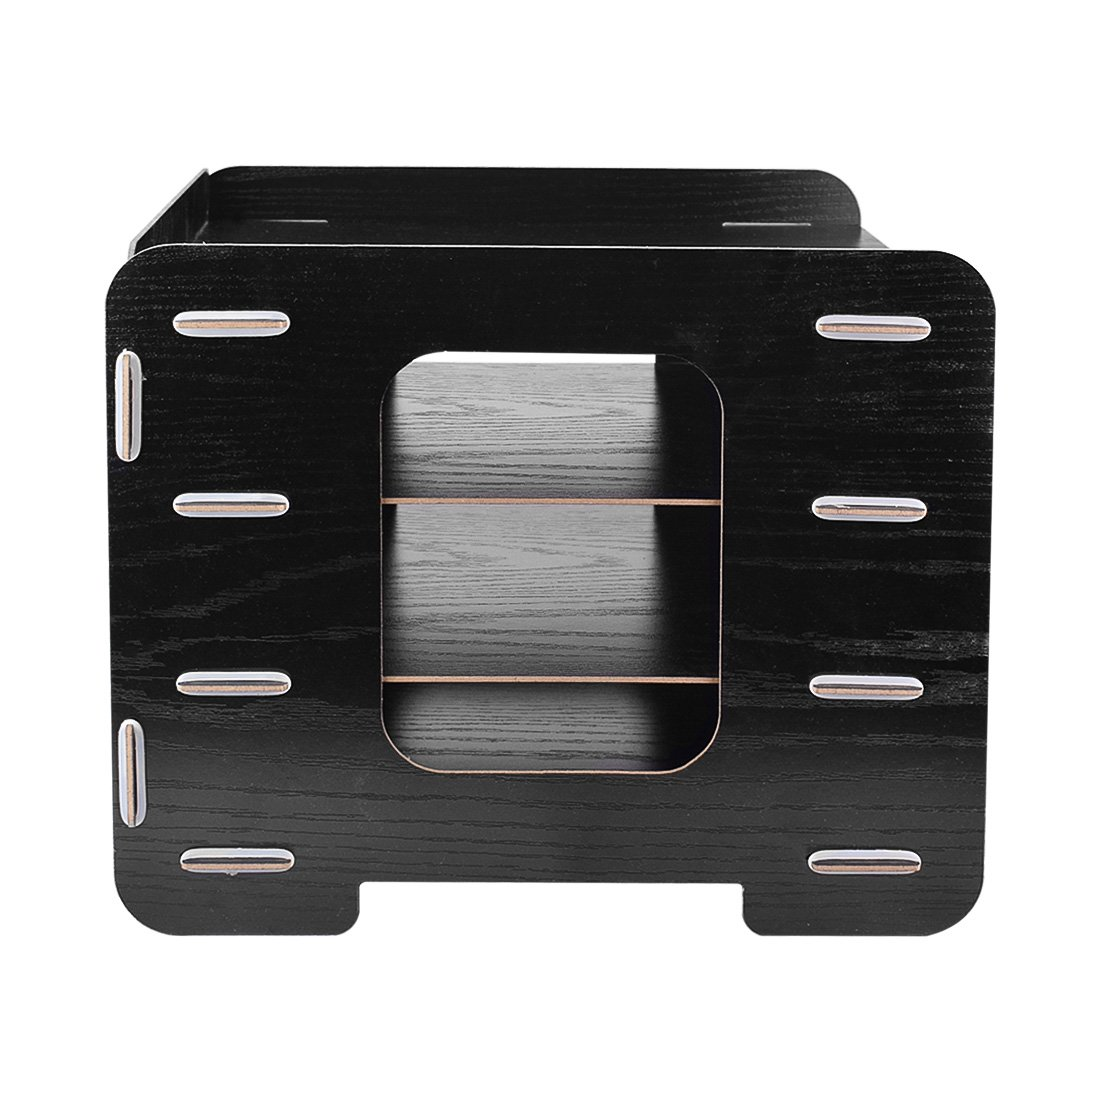 4 Trays Sorter Rack, OffKits Wood Desktop Document Organizer File Holder Wood Compartment Storage Rack Easy Assembly (Black) by OffKits (Image #3)